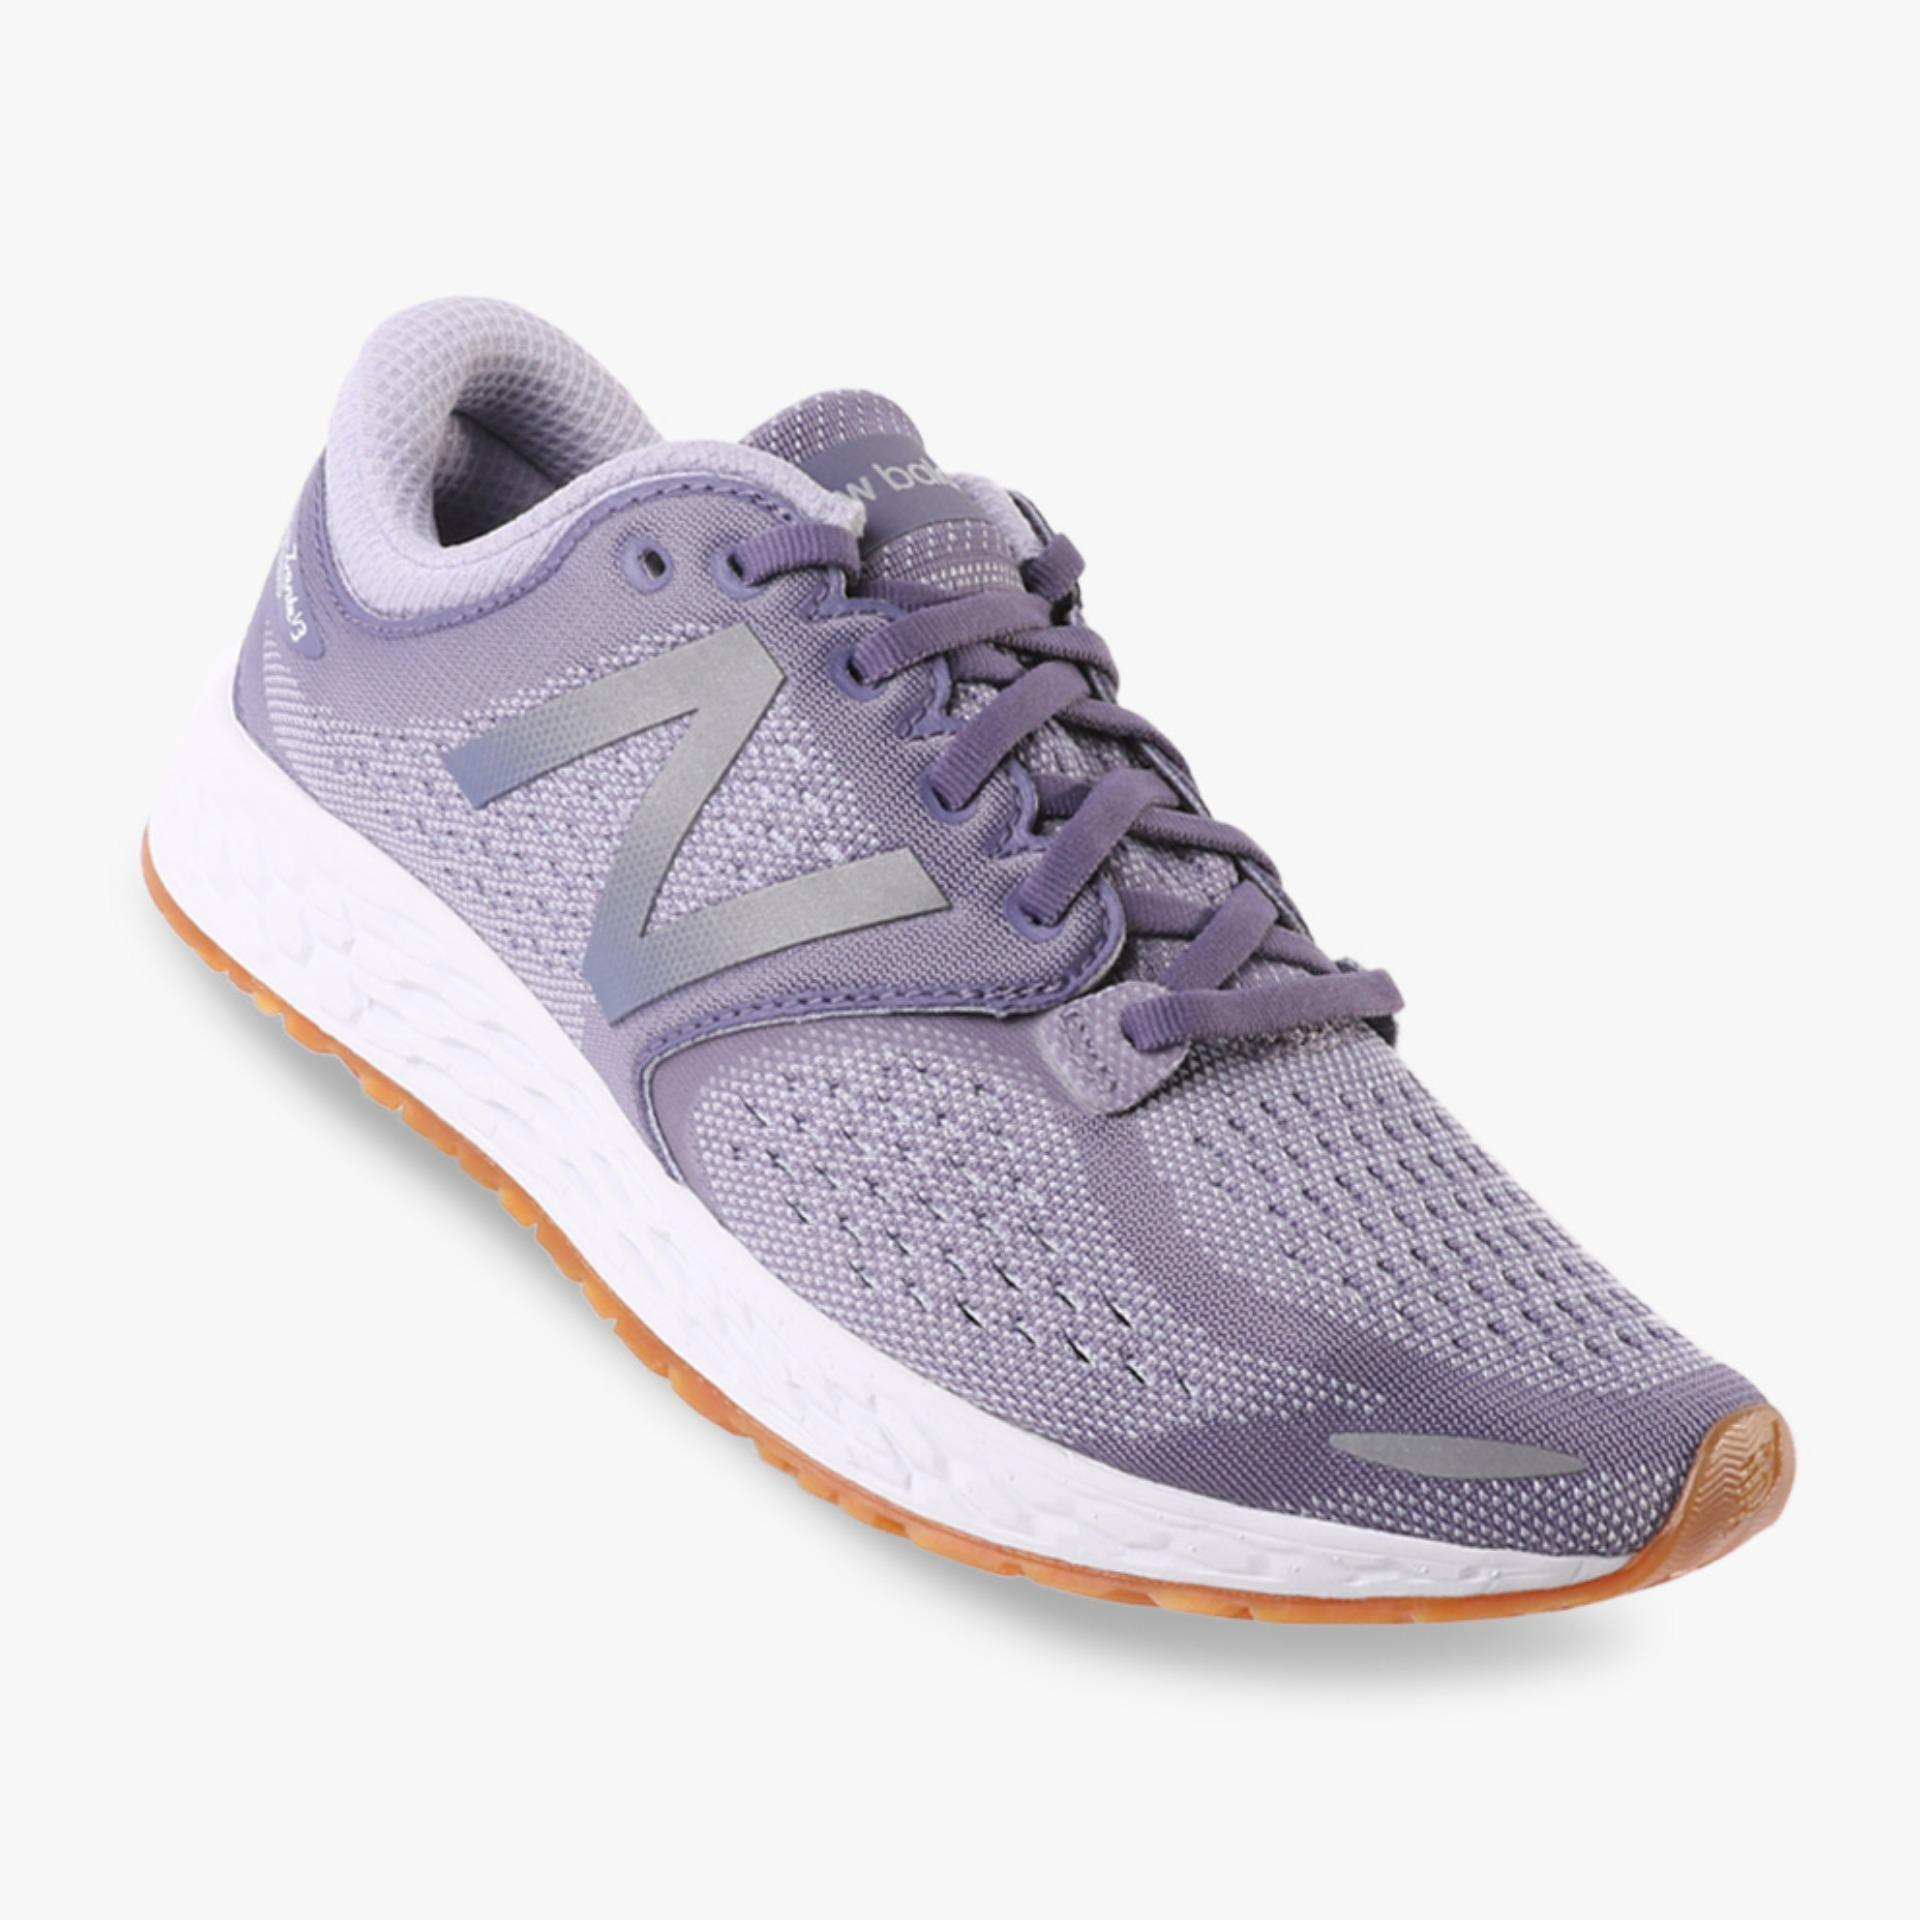 Jual Beli New Balance Fresh Foam Zante Breathe Pack Women S Running Shoes Ungu Di Indonesia